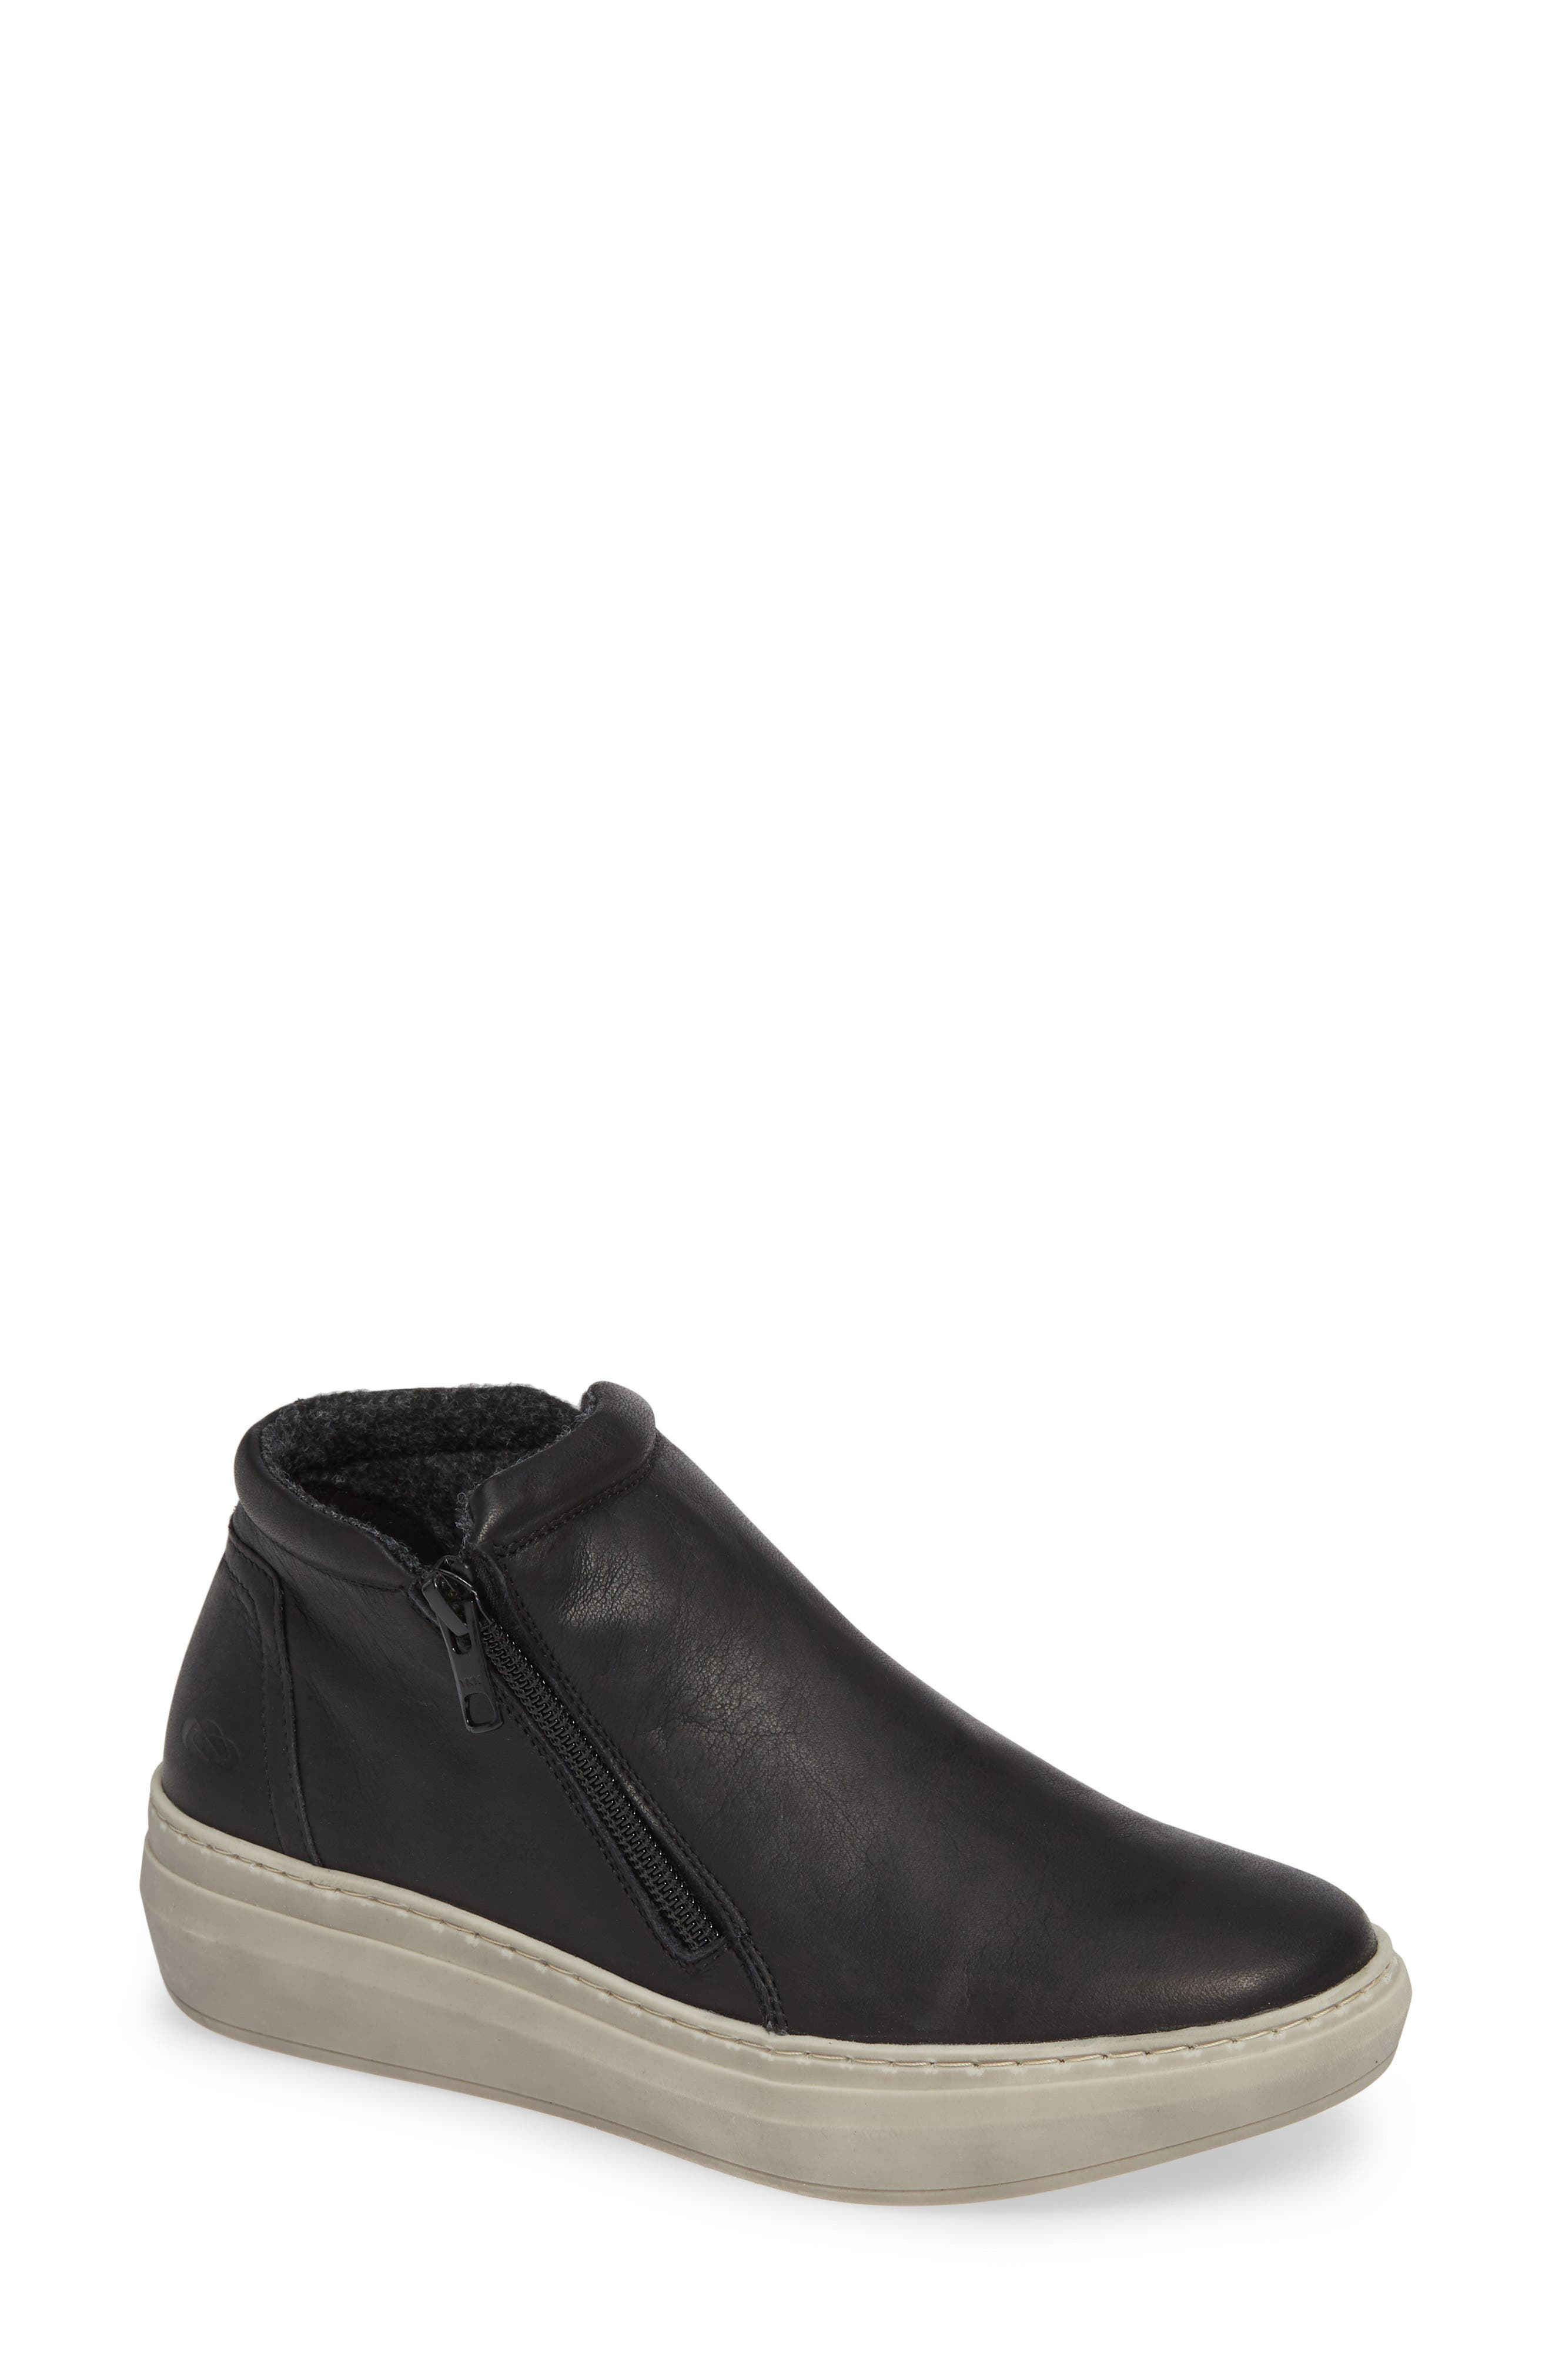 CLOUD,                             Qupid Wool Lined Sneaker,                             Main thumbnail 1, color,                             BLACK LEATHER